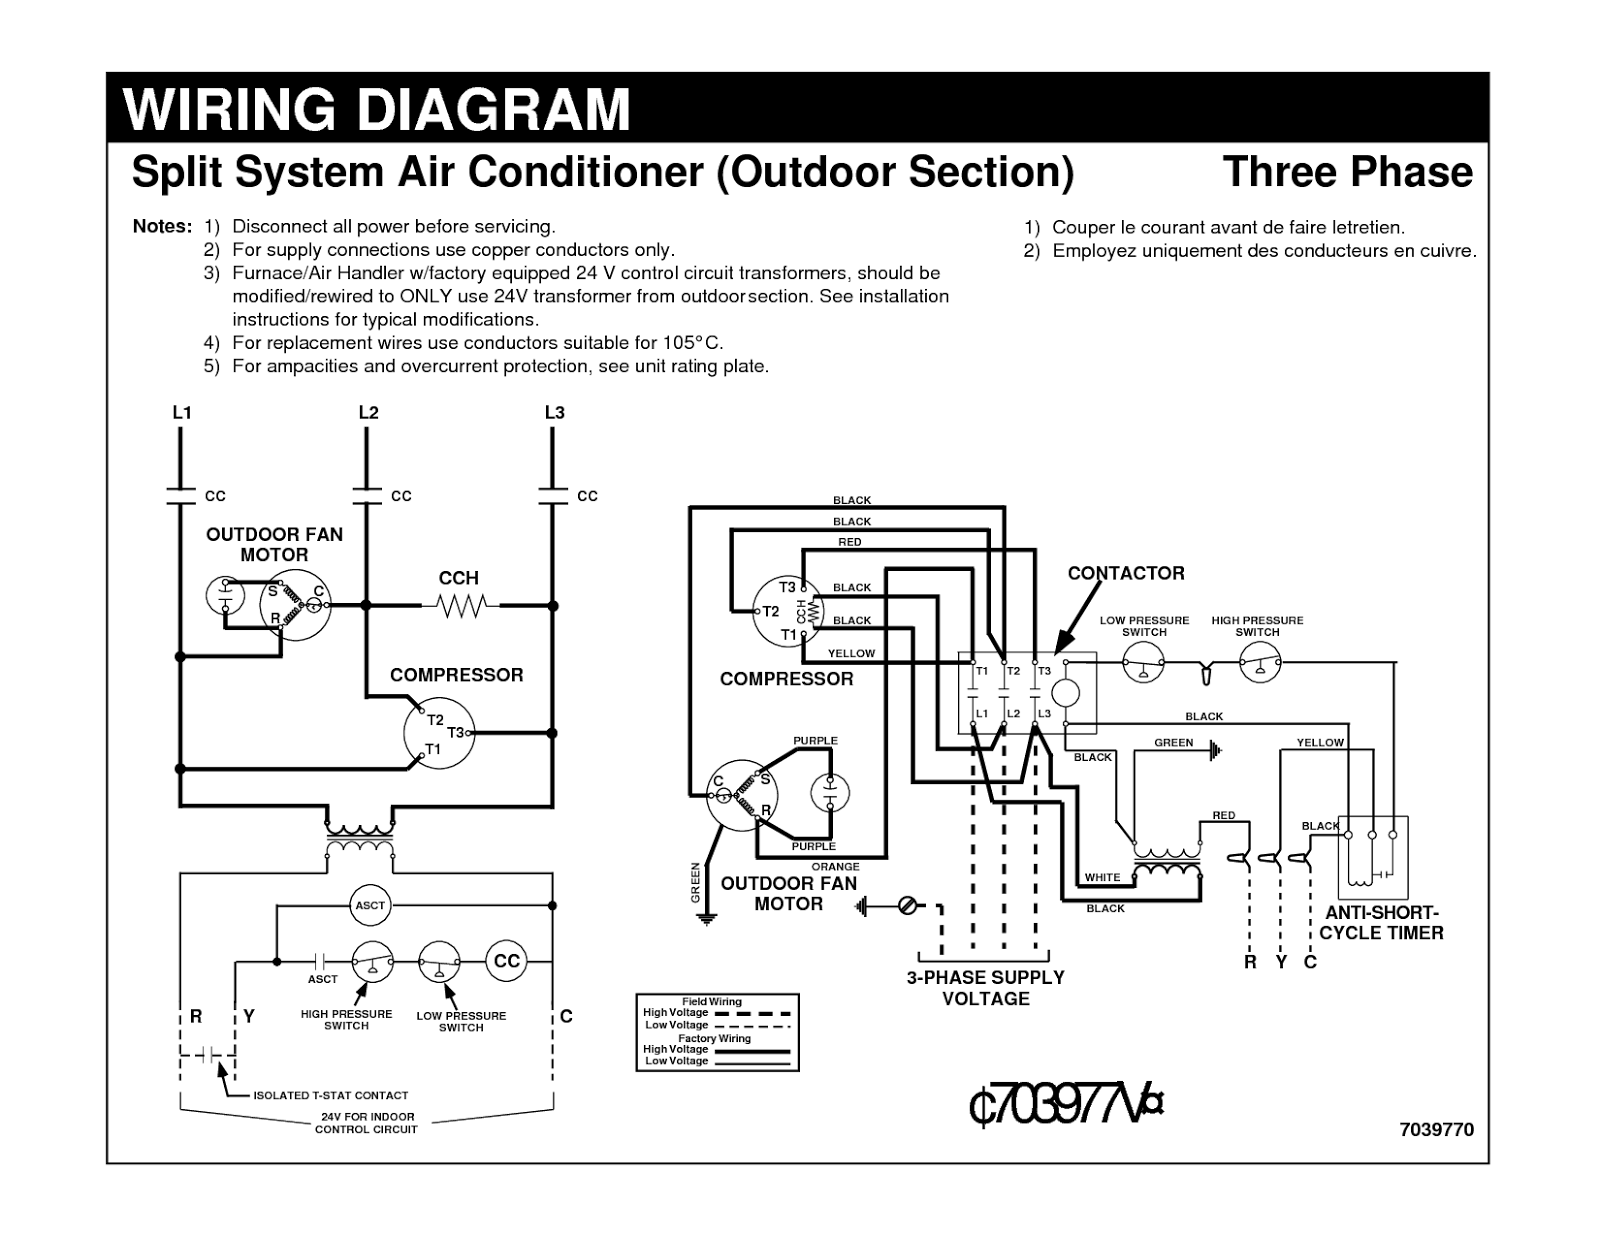 small resolution of house wiring diagram hvac wiring diagrams rh 27 jennifer retzke de hvac electrical wiring diagram symbols household diagrams and schematics for hvac